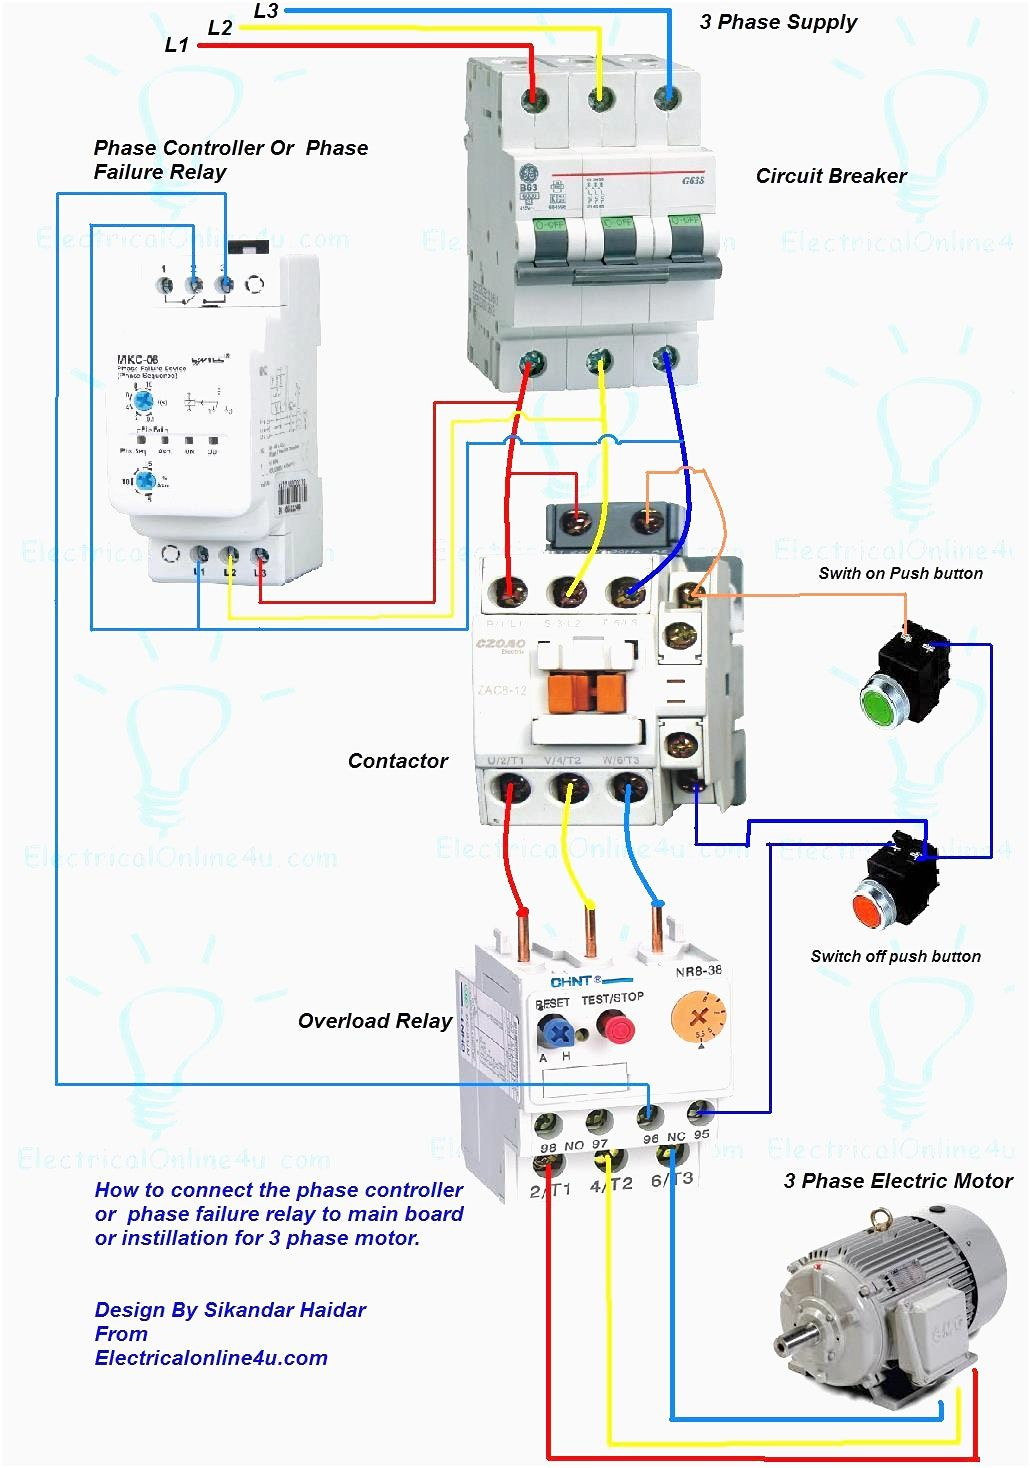 small resolution of wiring diagram for motor starter 3 phase controller failure relay 6 wire 3 phase motor wiring 3 phase motor starter relay wiring diagram